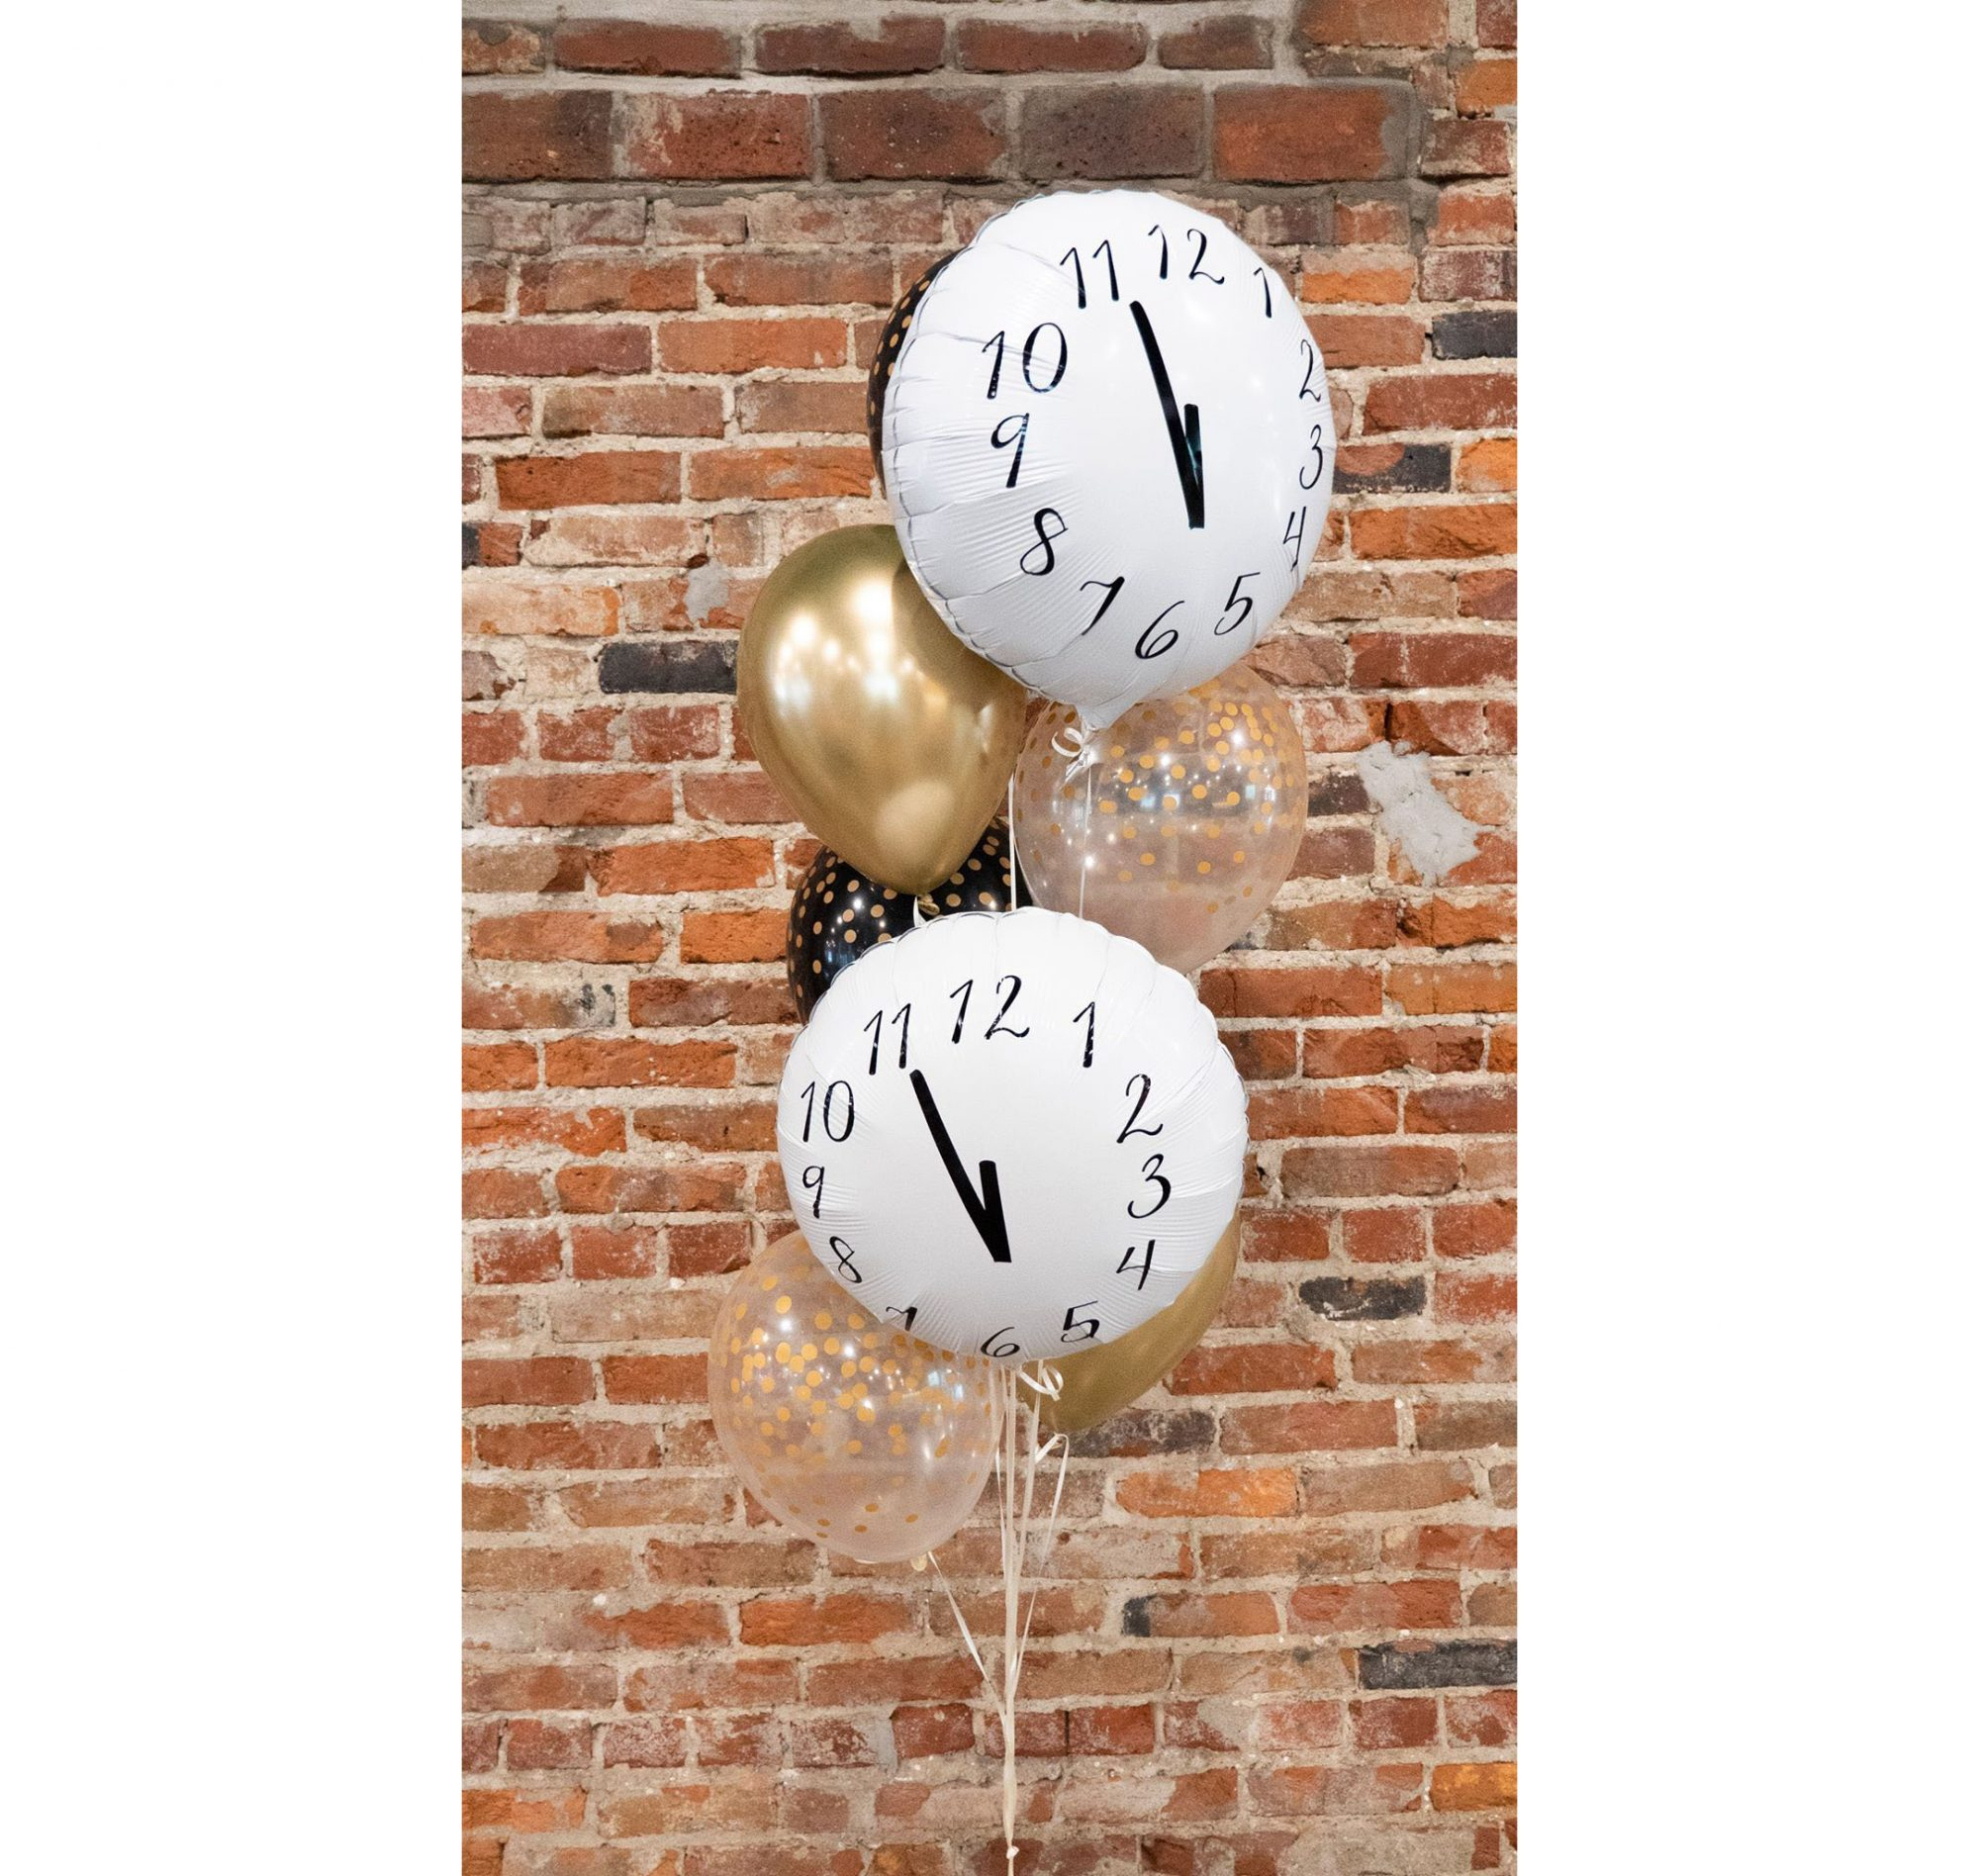 New Years Eve Decorations, Clock Balloons